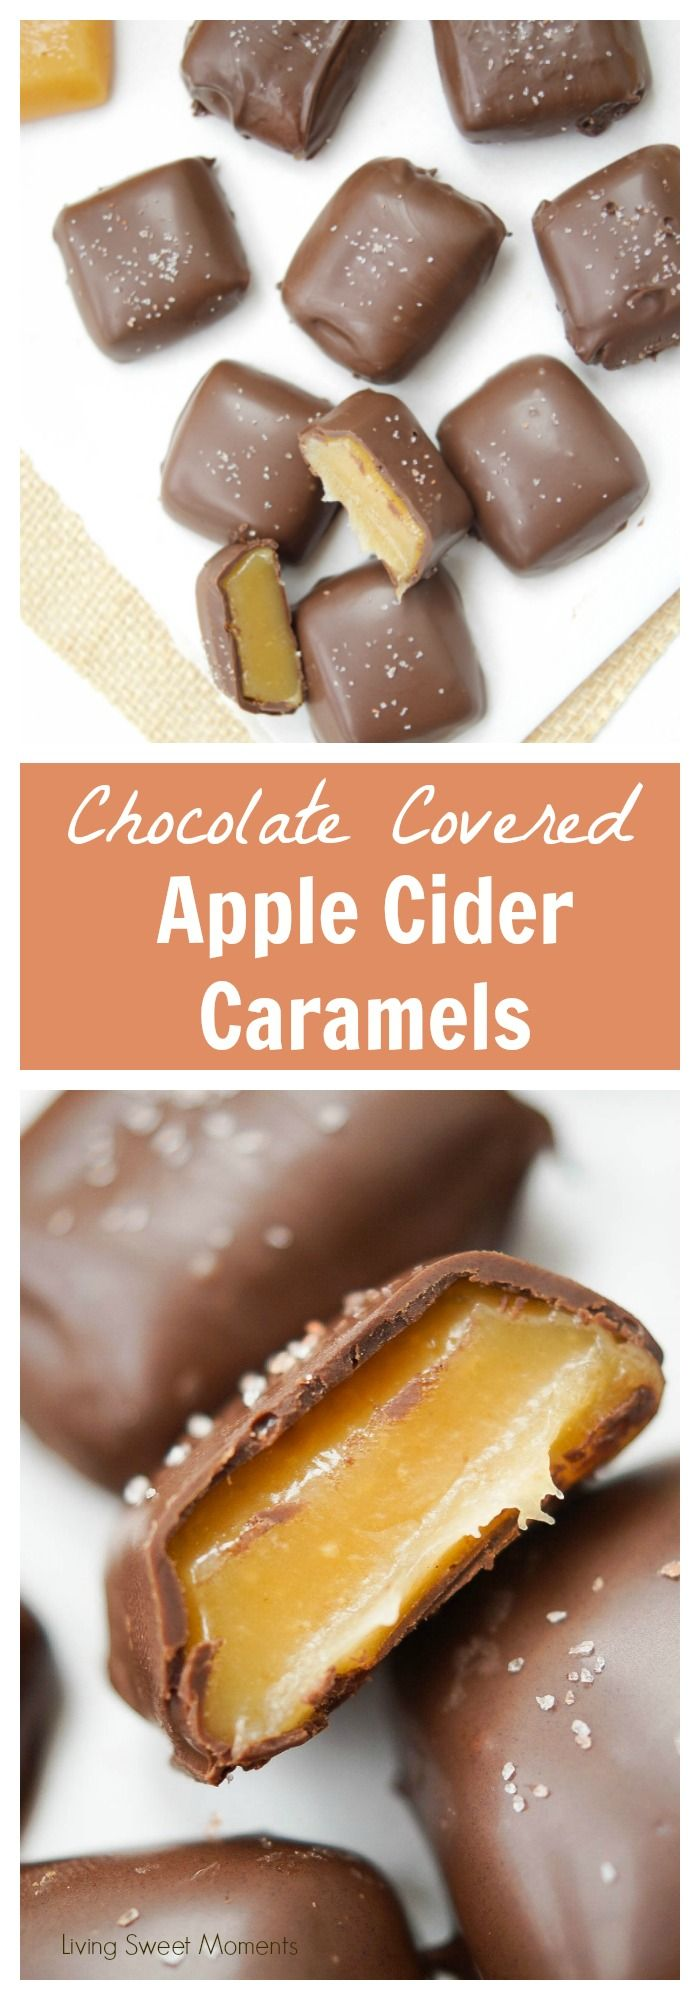 This chocolate covered Apple Cider Caramels recipe is easy to make. The perfect…